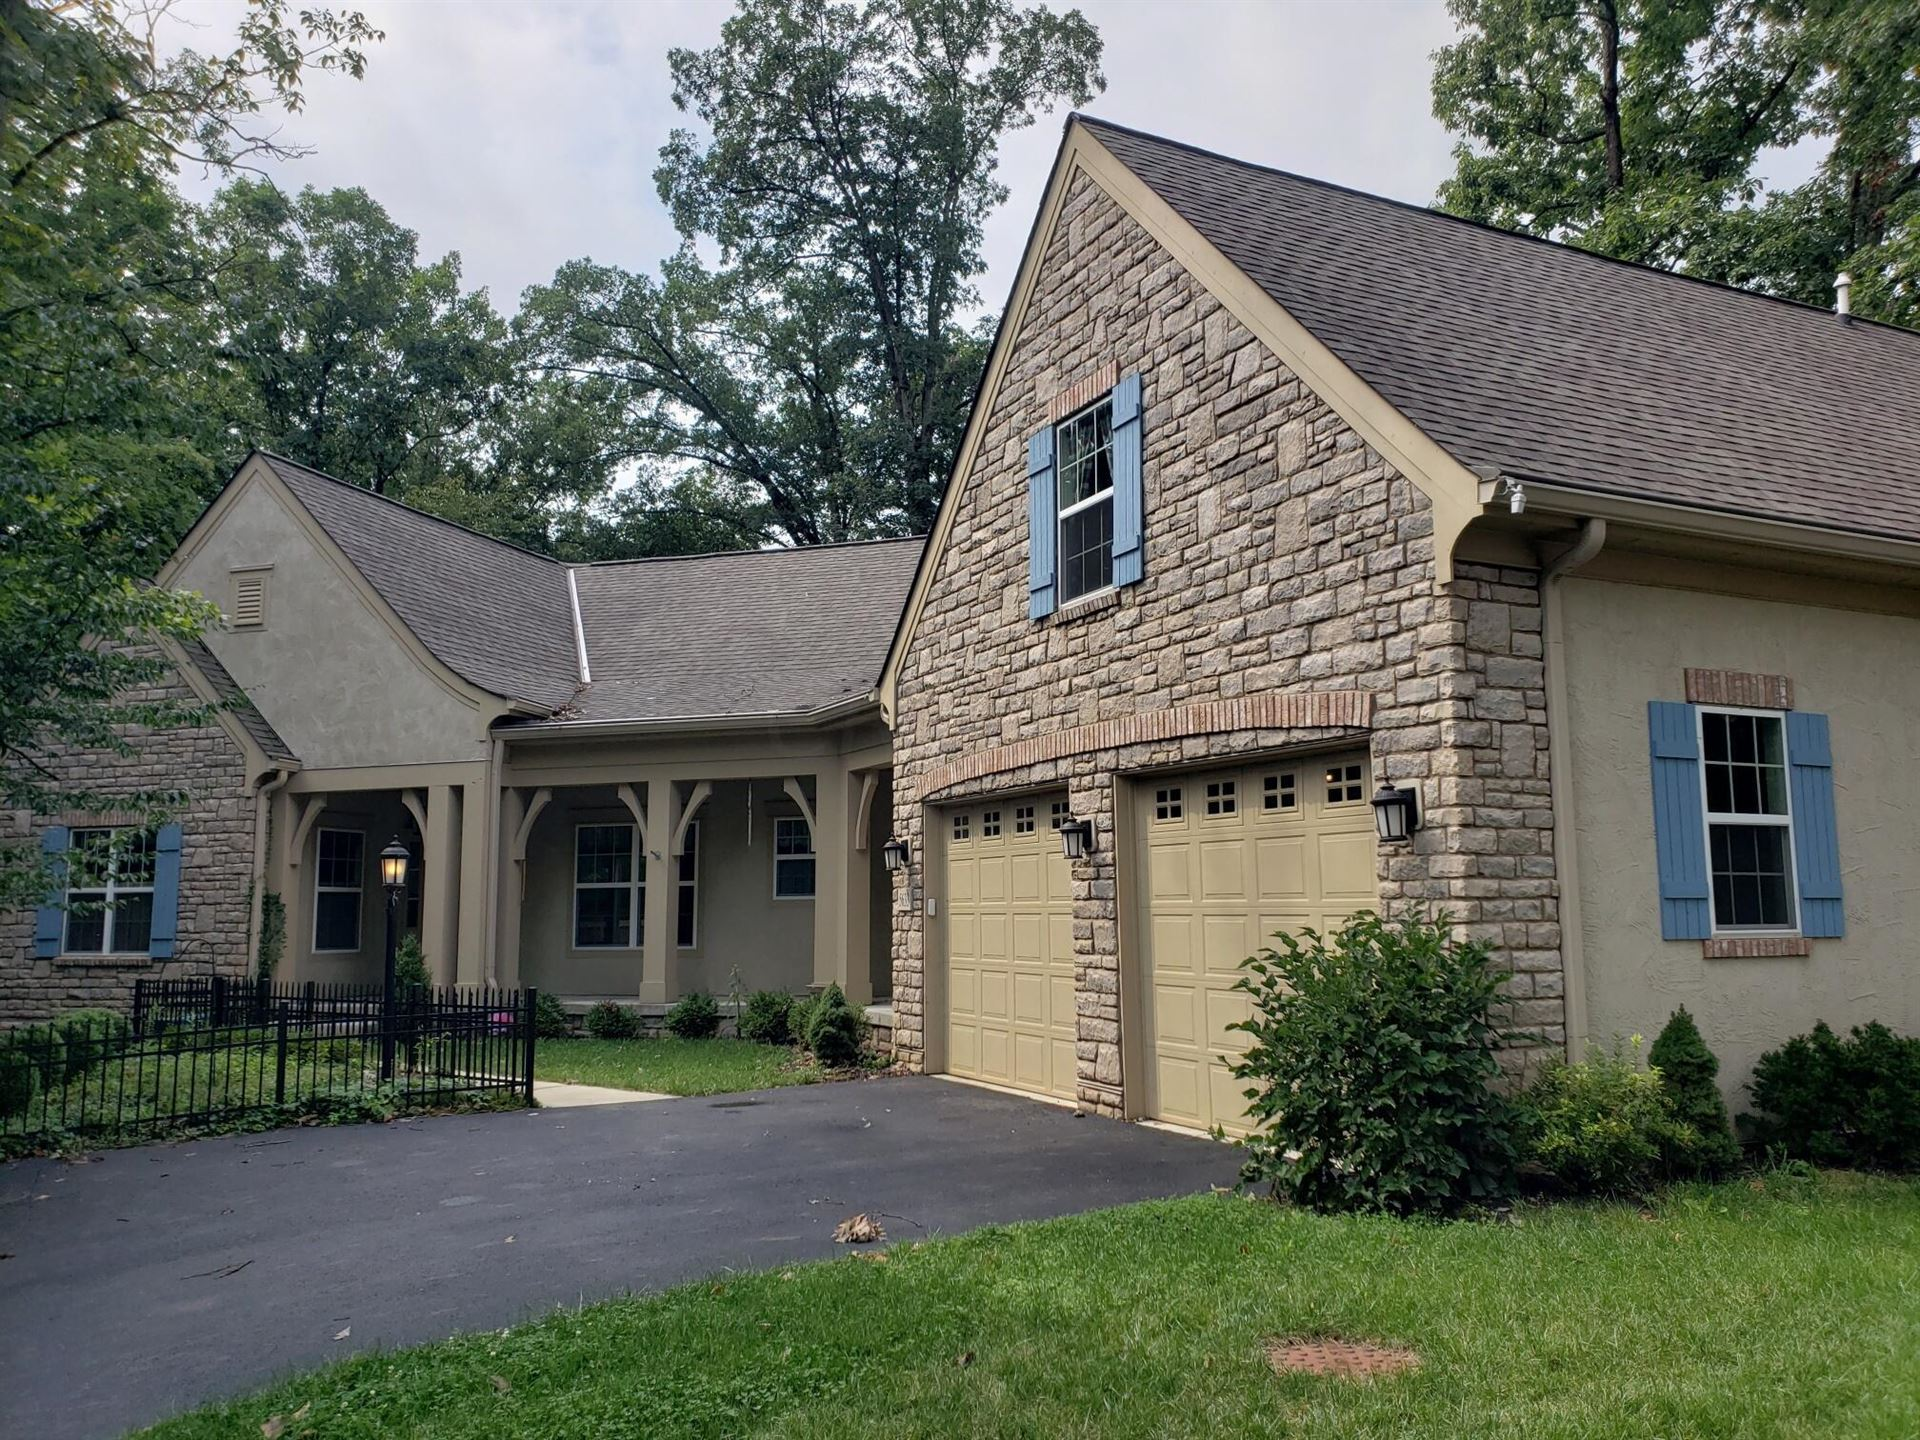 Photo of 5633 Travis Pointe Court, Westerville, OH 43082 (MLS # 221036582)